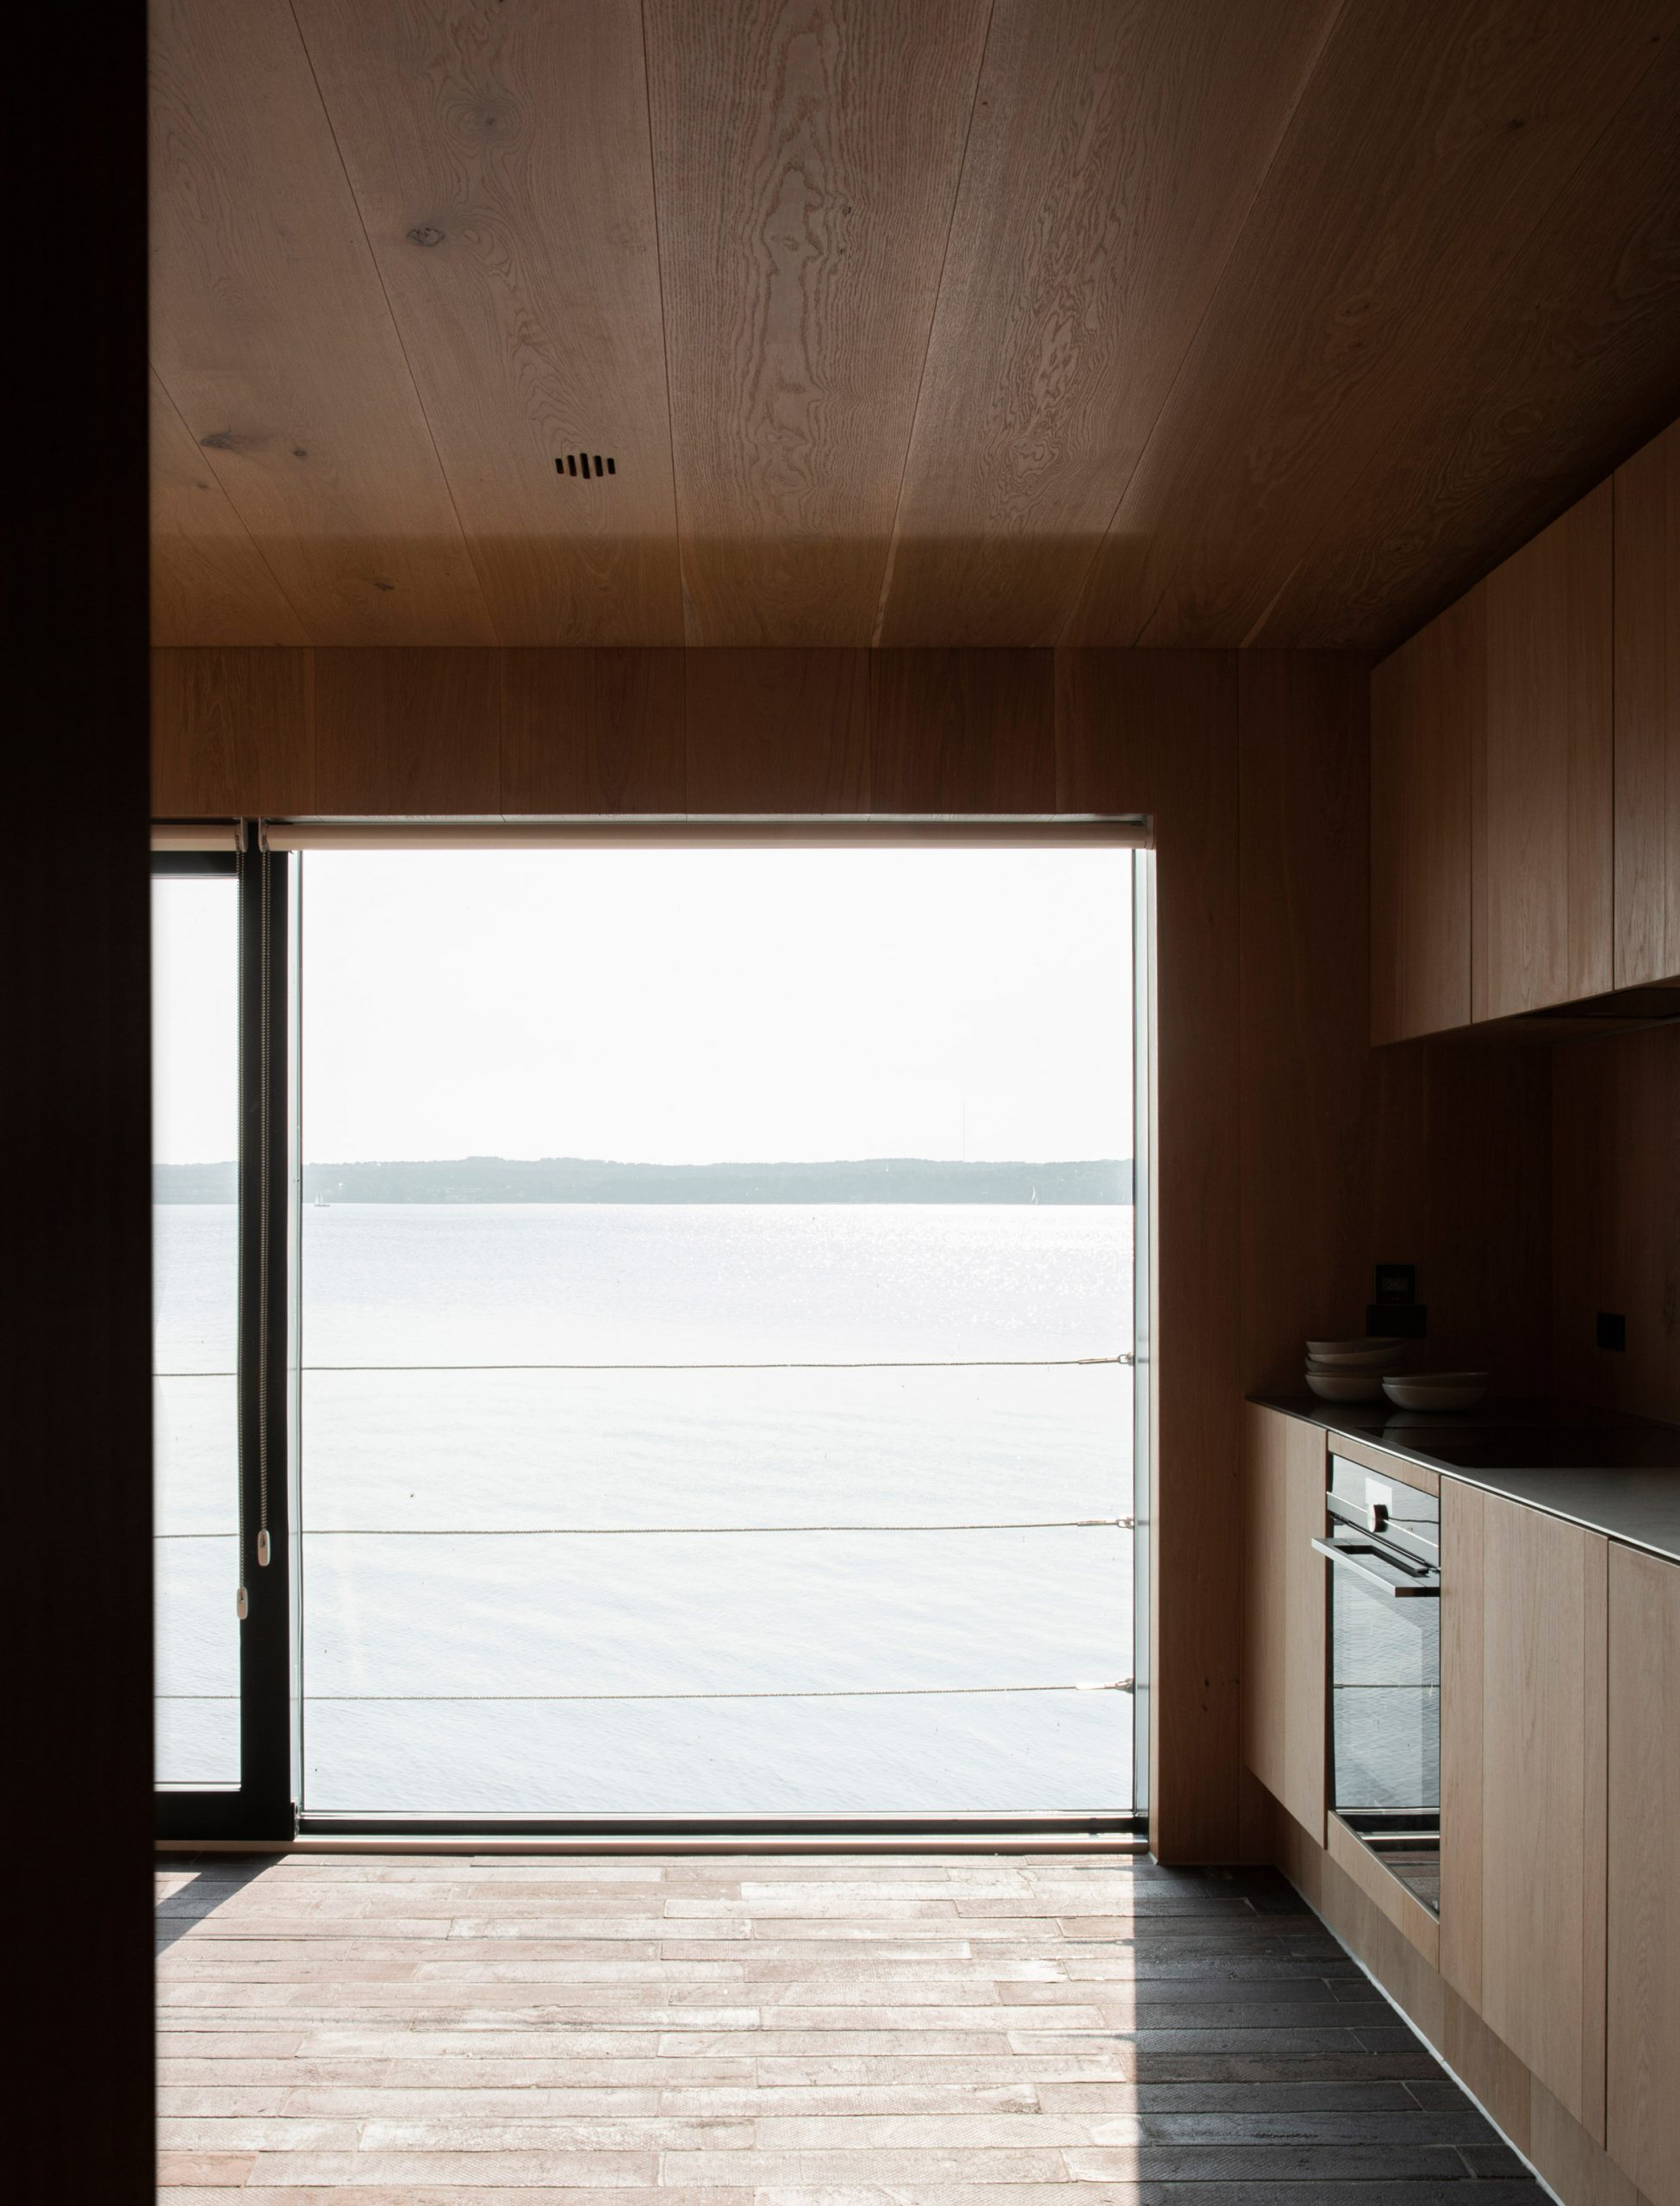 Kitchen of Fjord Boat House by Norm Architects has lake views